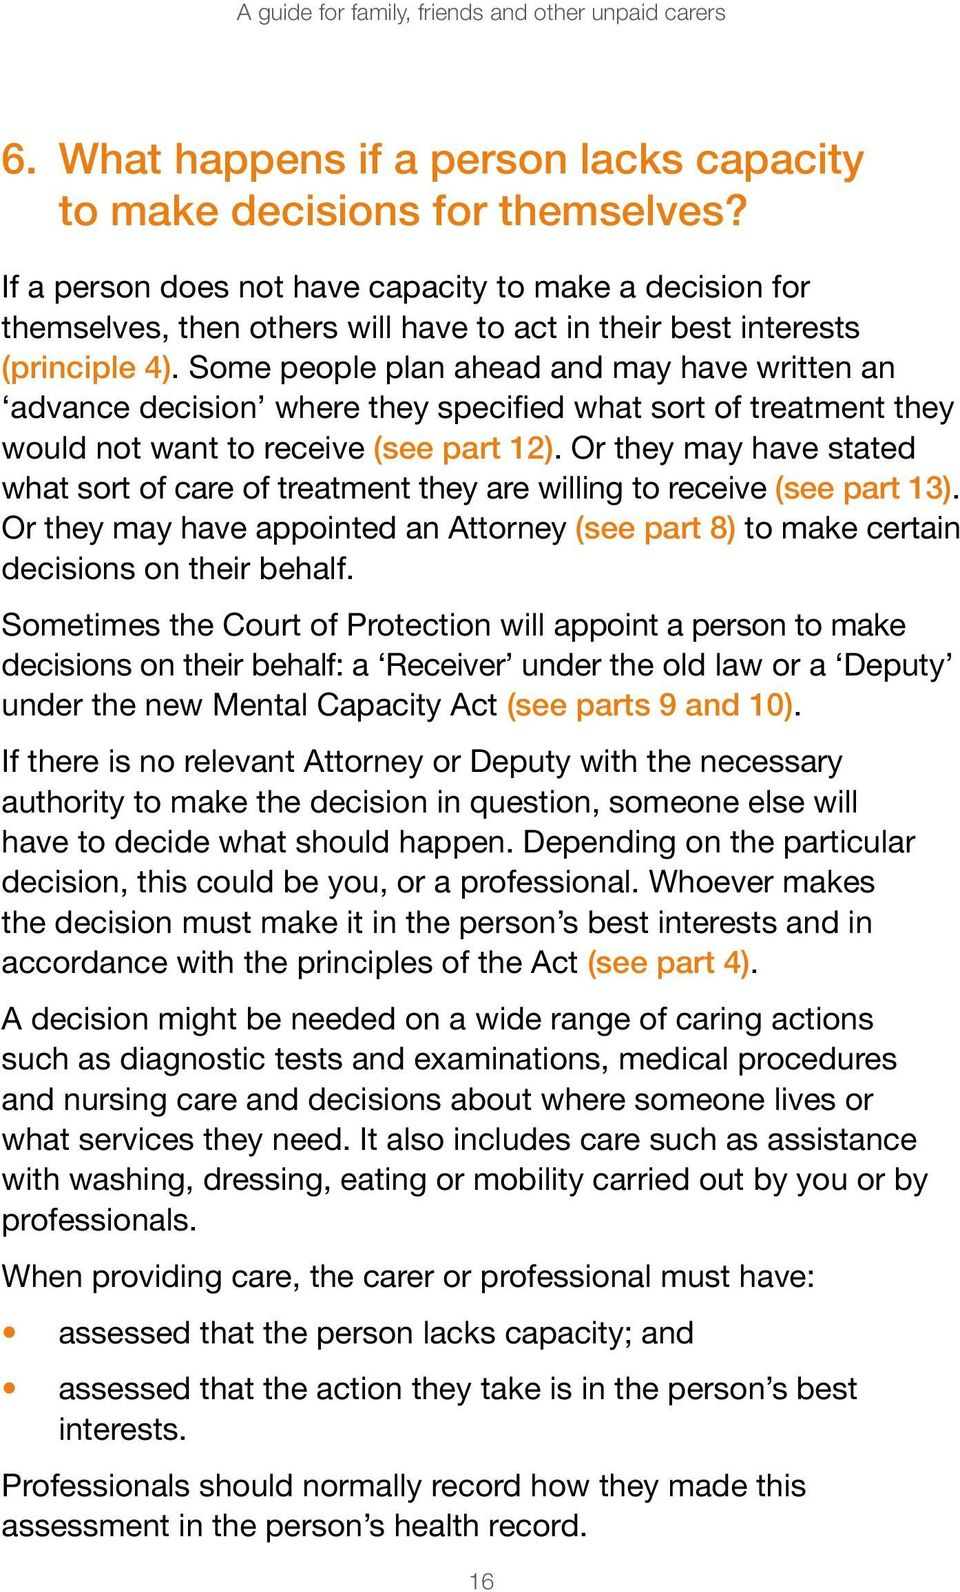 Some people plan ahead and may have written an advance decision where they specified what sort of treatment they would not want to receive (see part 12).